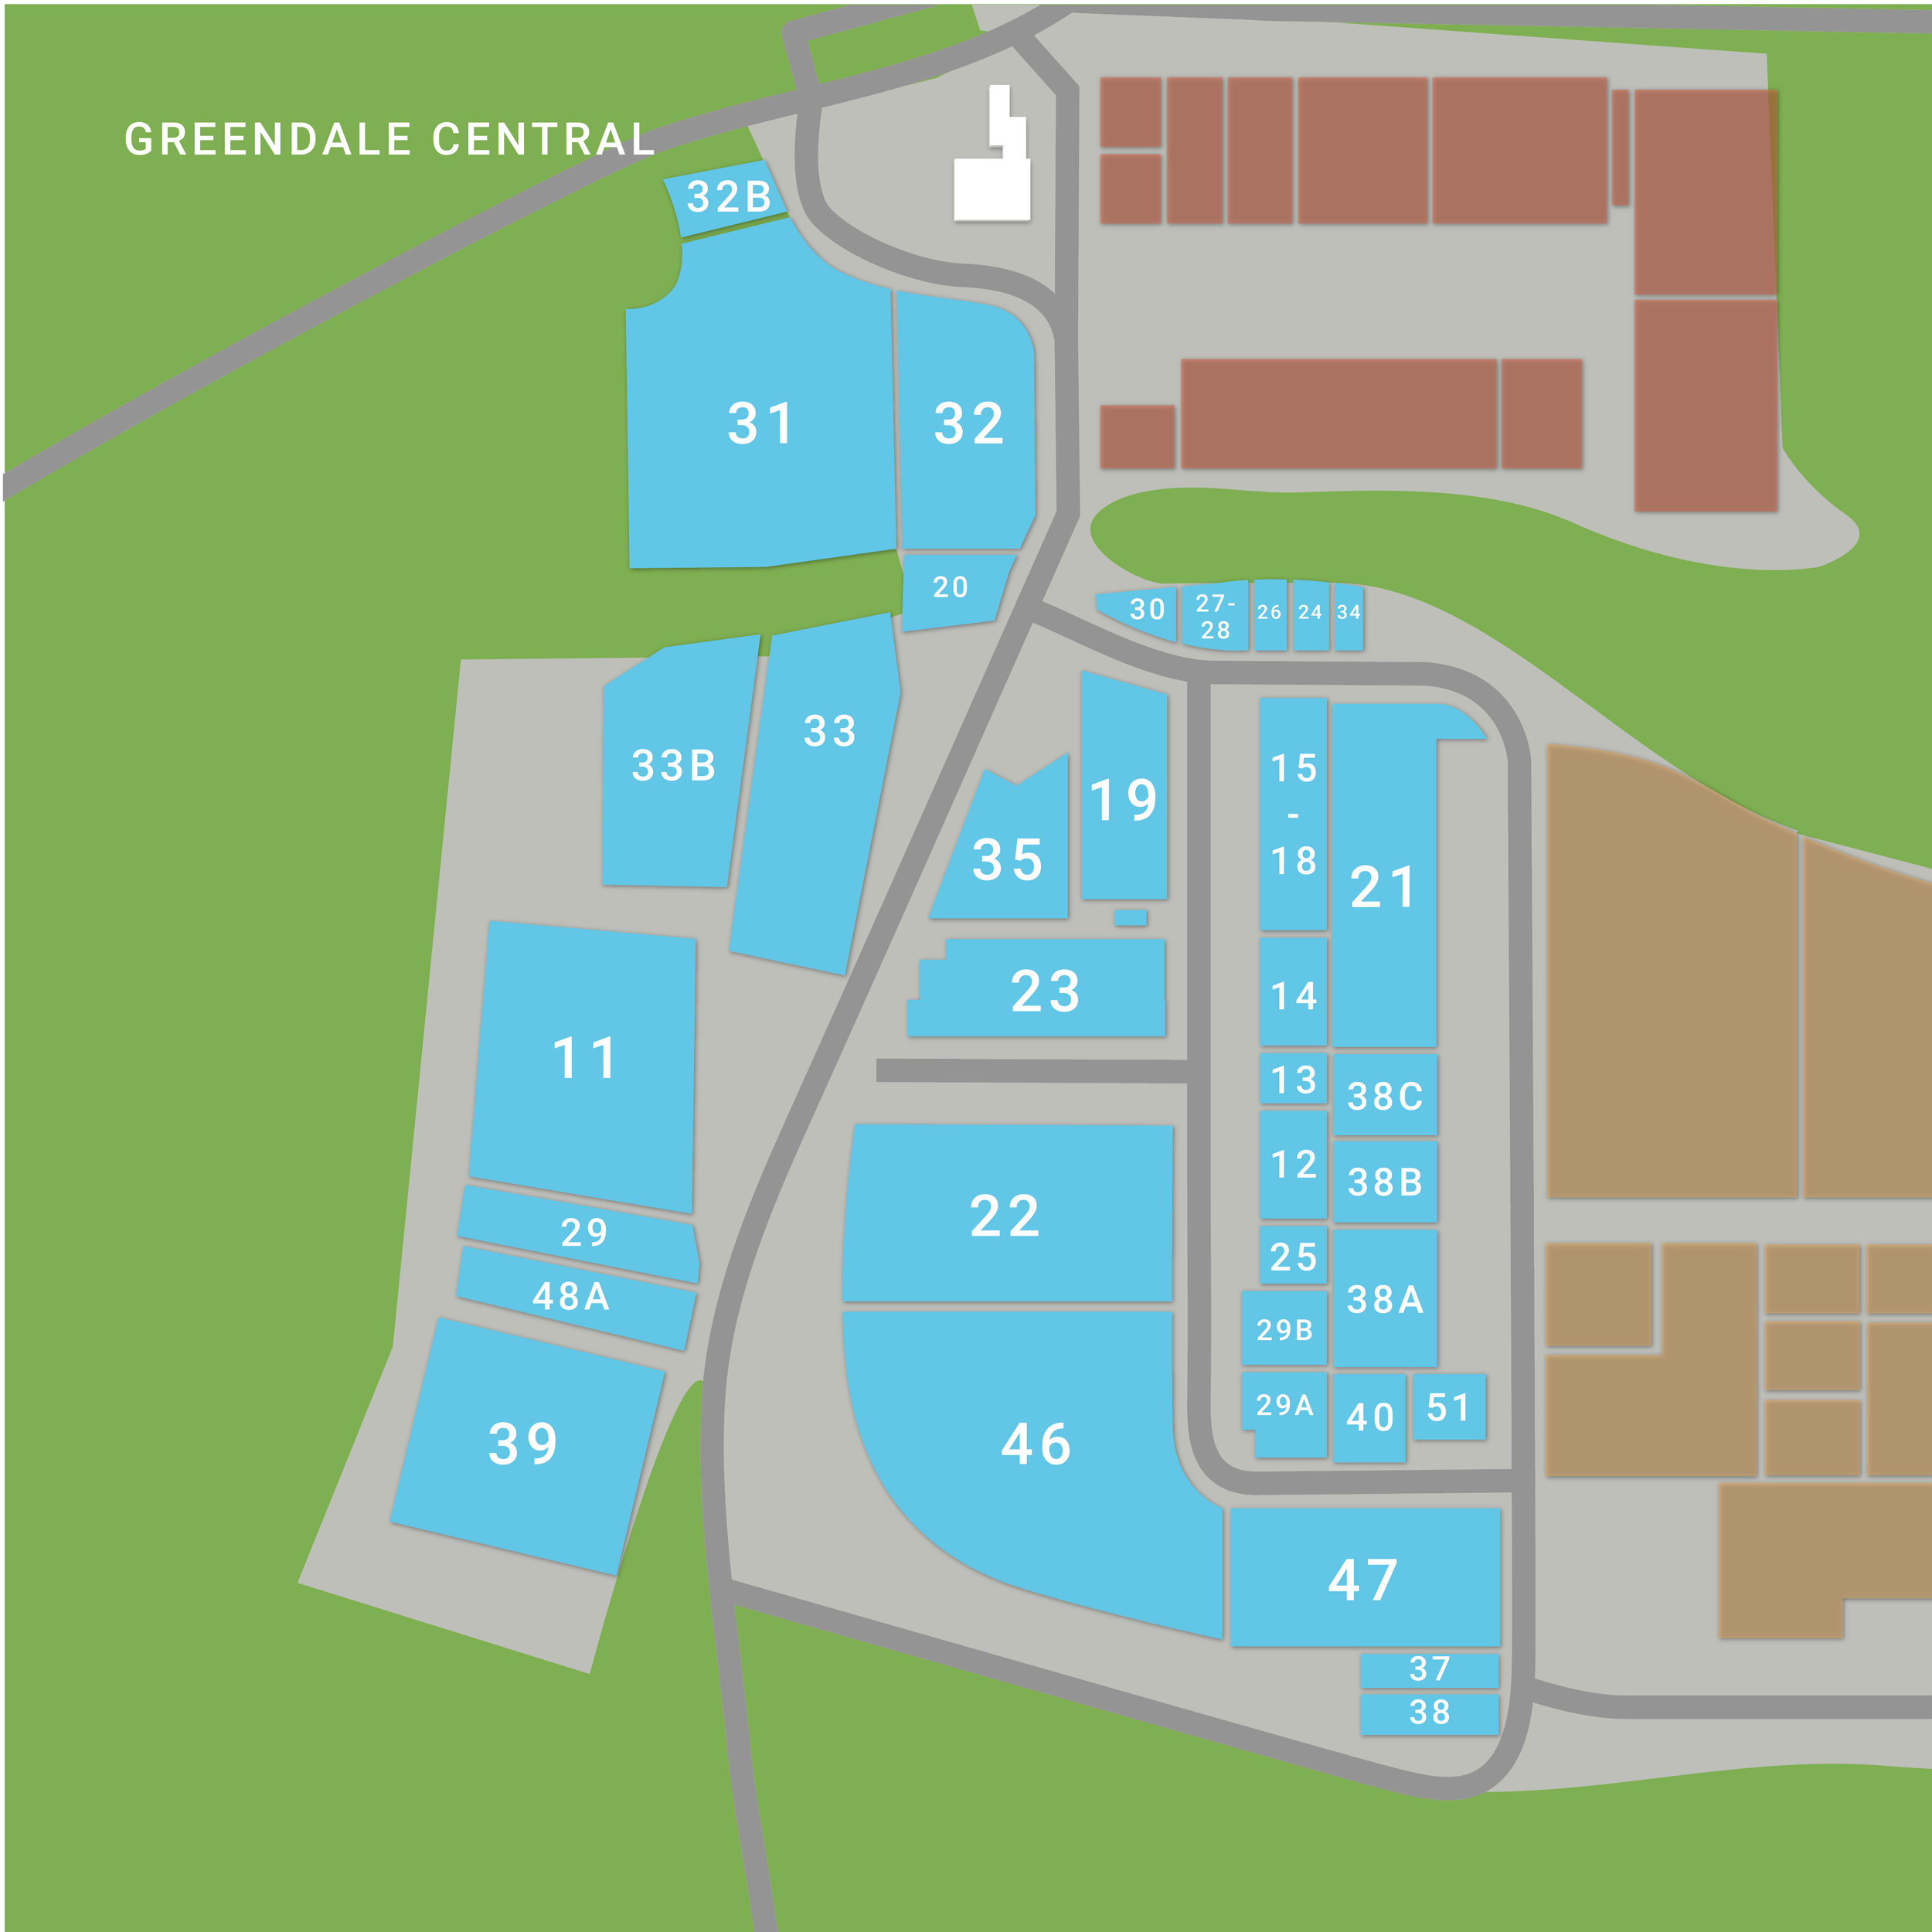 Greendale Business Park - Greendale Central.jpg